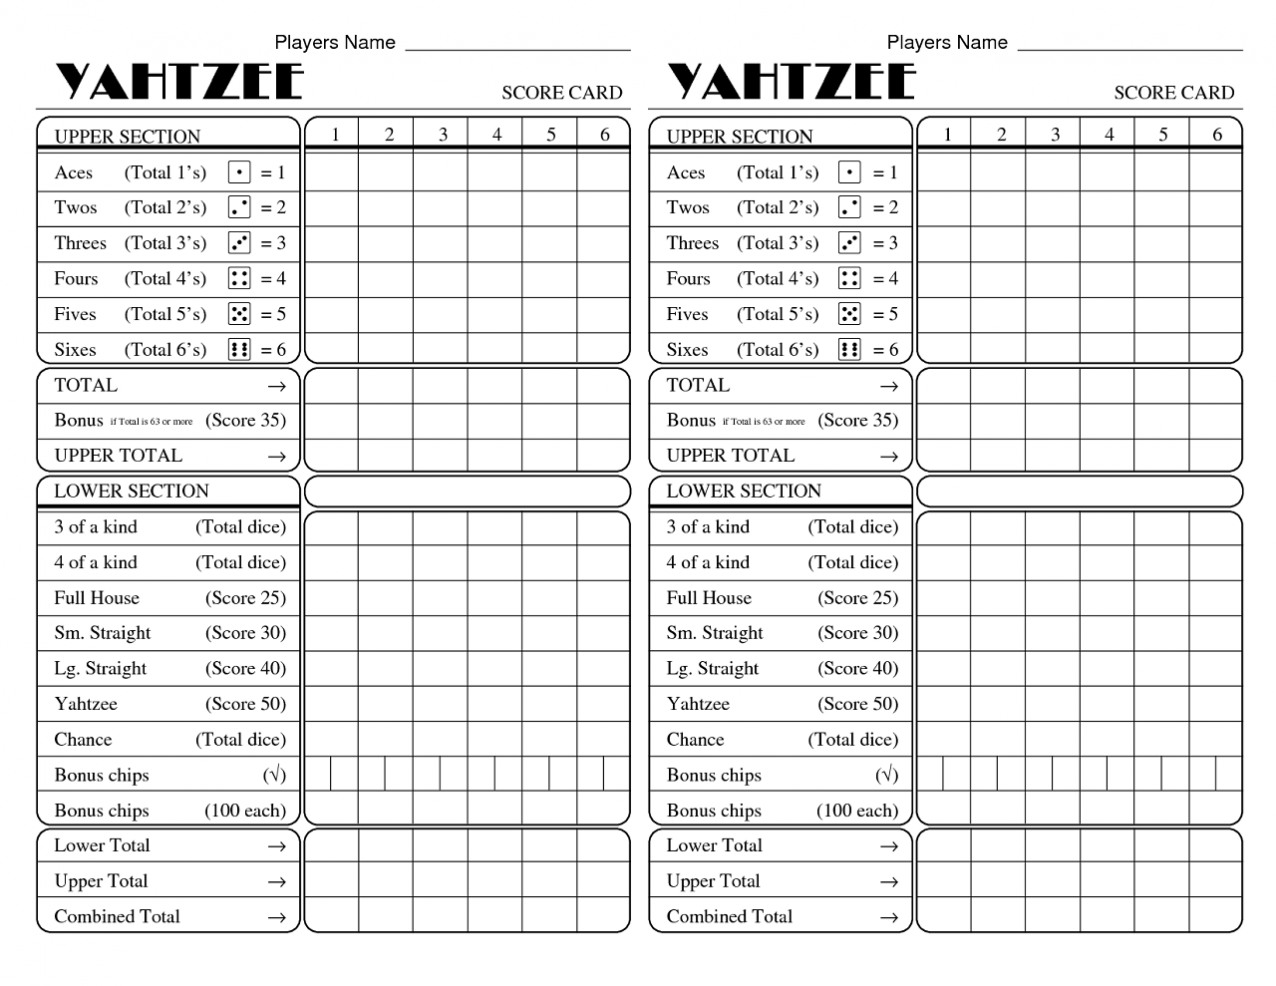 photo regarding Printable Yahtzee Score Sheets Pdf named Impression final result for printable yahtzee rating card pdf Bash